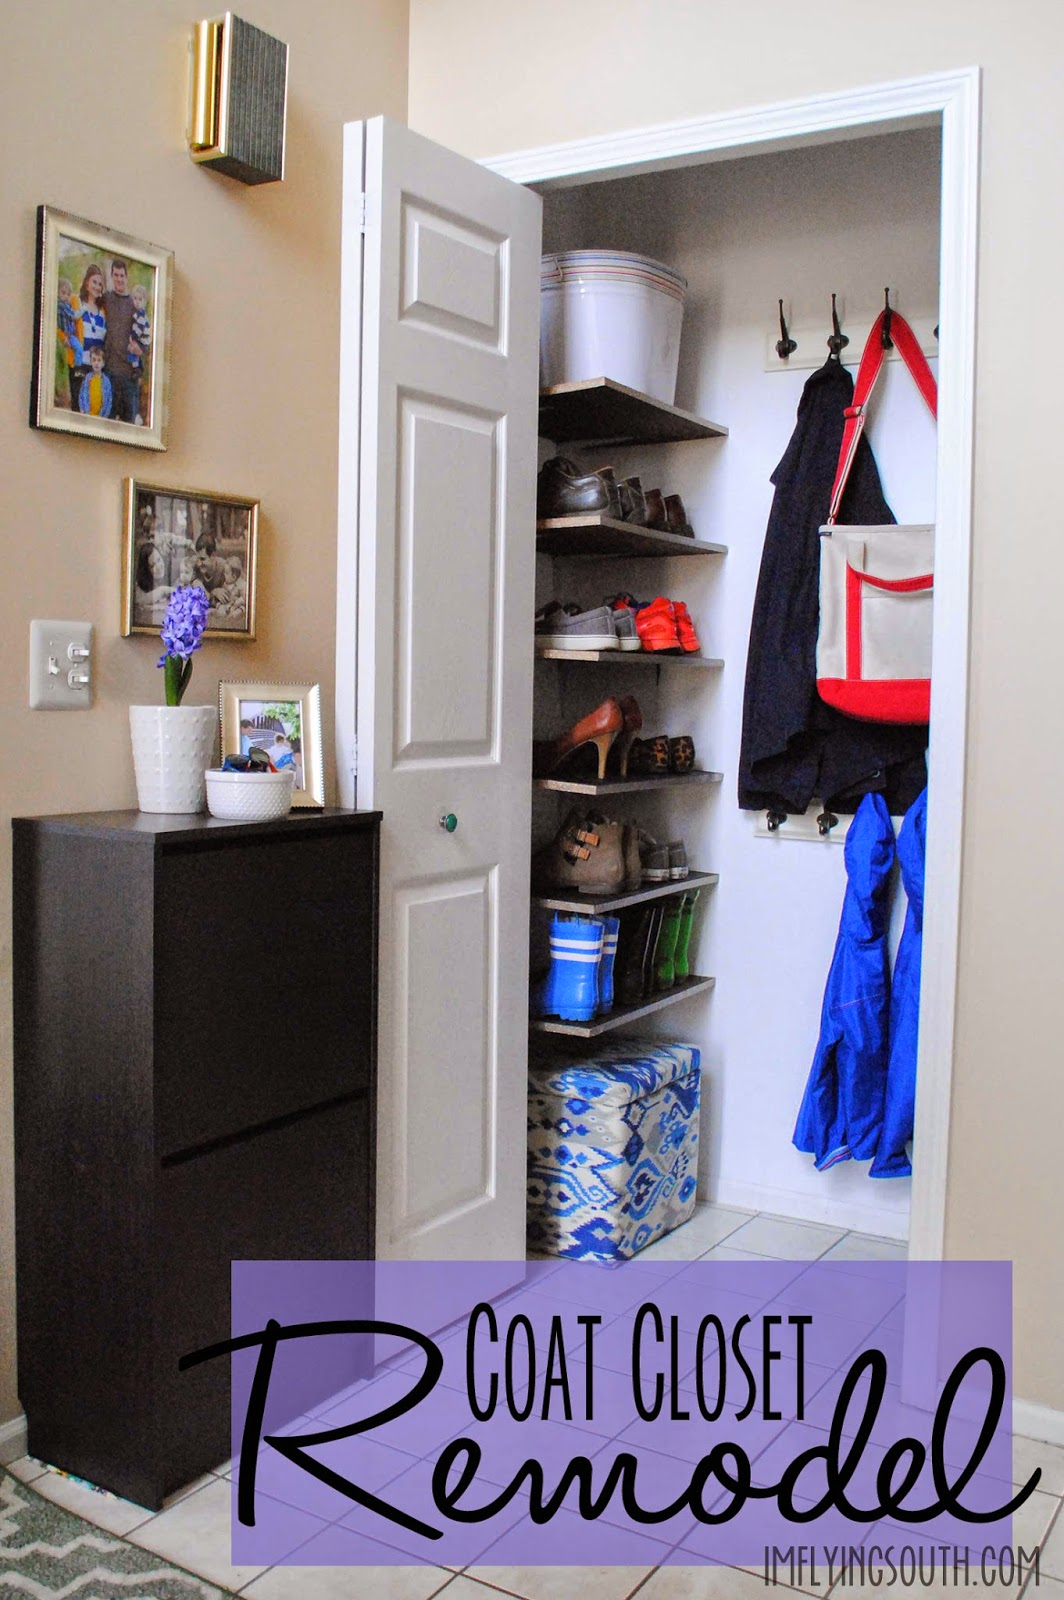 A Little Coat Closet Remodel Has Been In The Cards Since About Minute We Closed On House Both Entrances To Our Are Through Foyer